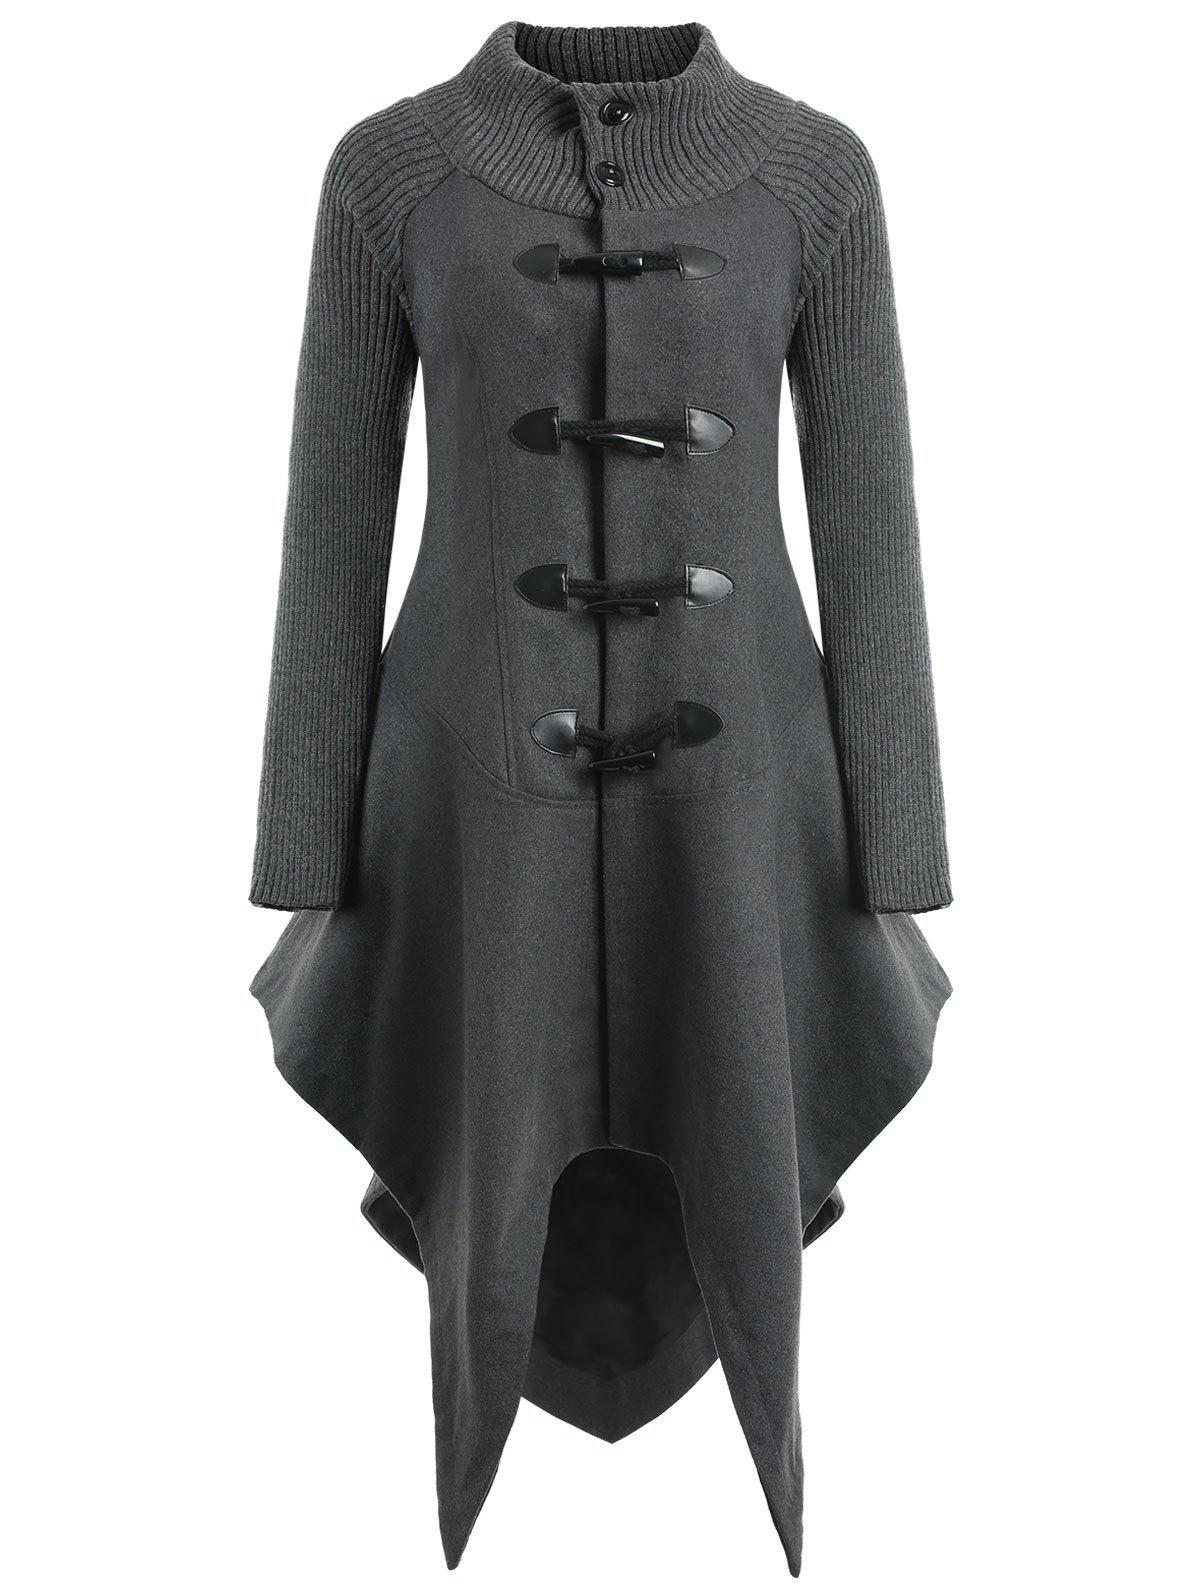 Horn Button Handkerchief Wool Coat - DARK GREY L